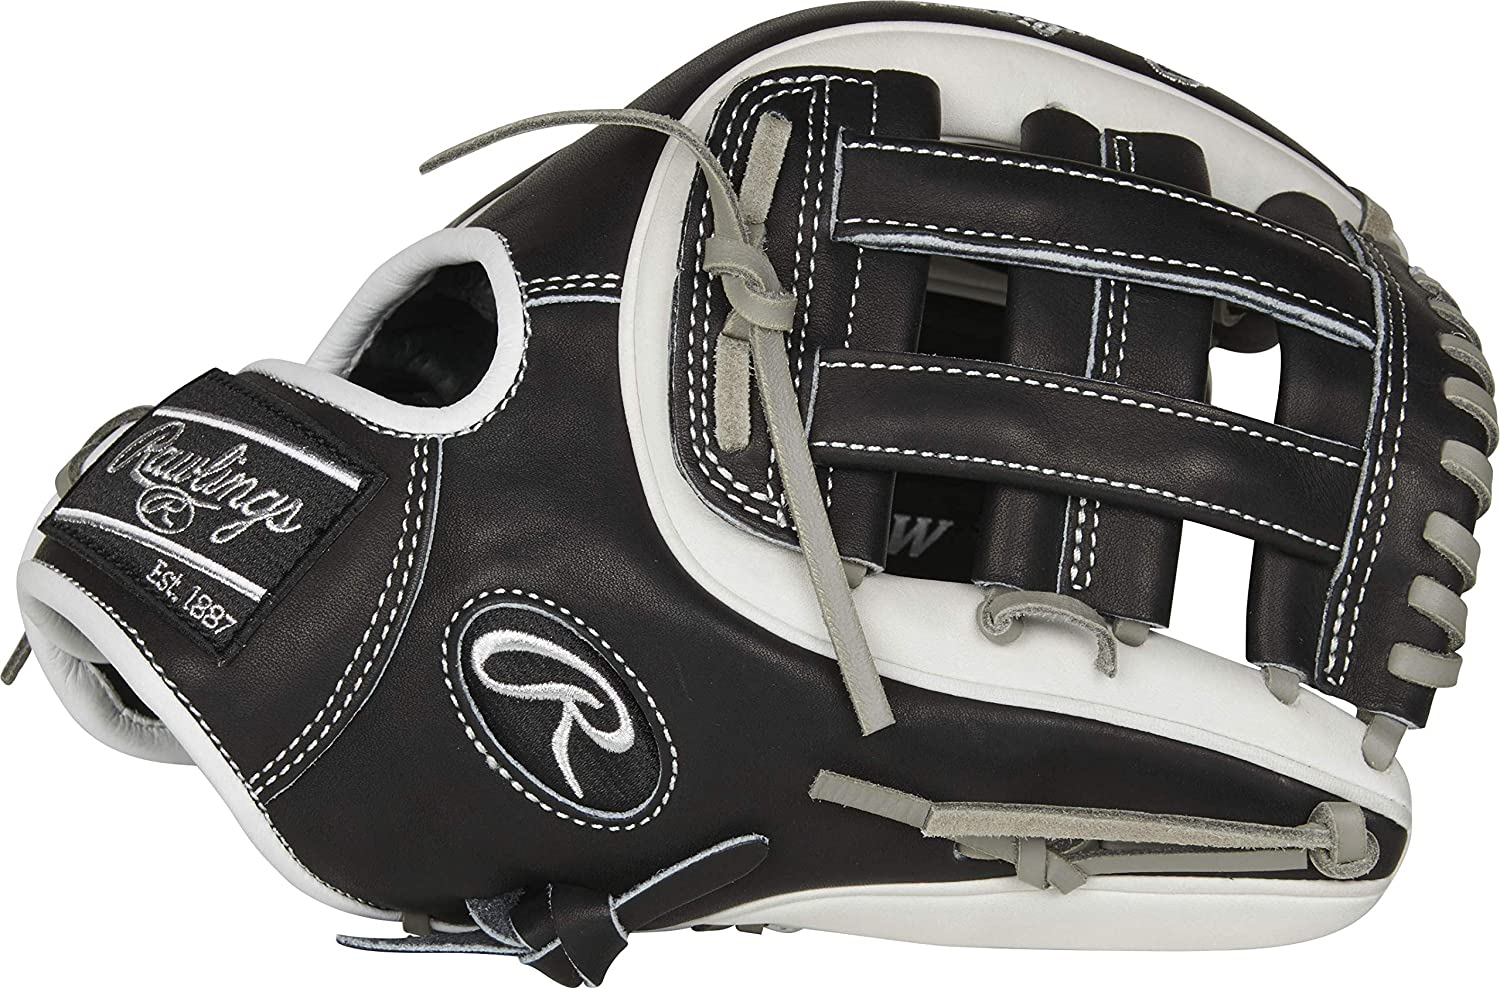 Rawlings Heart of The Hide 11.5インチ 野球グローブ PRO314-6BW PRO314-6BW Right  B07PCMPKTD